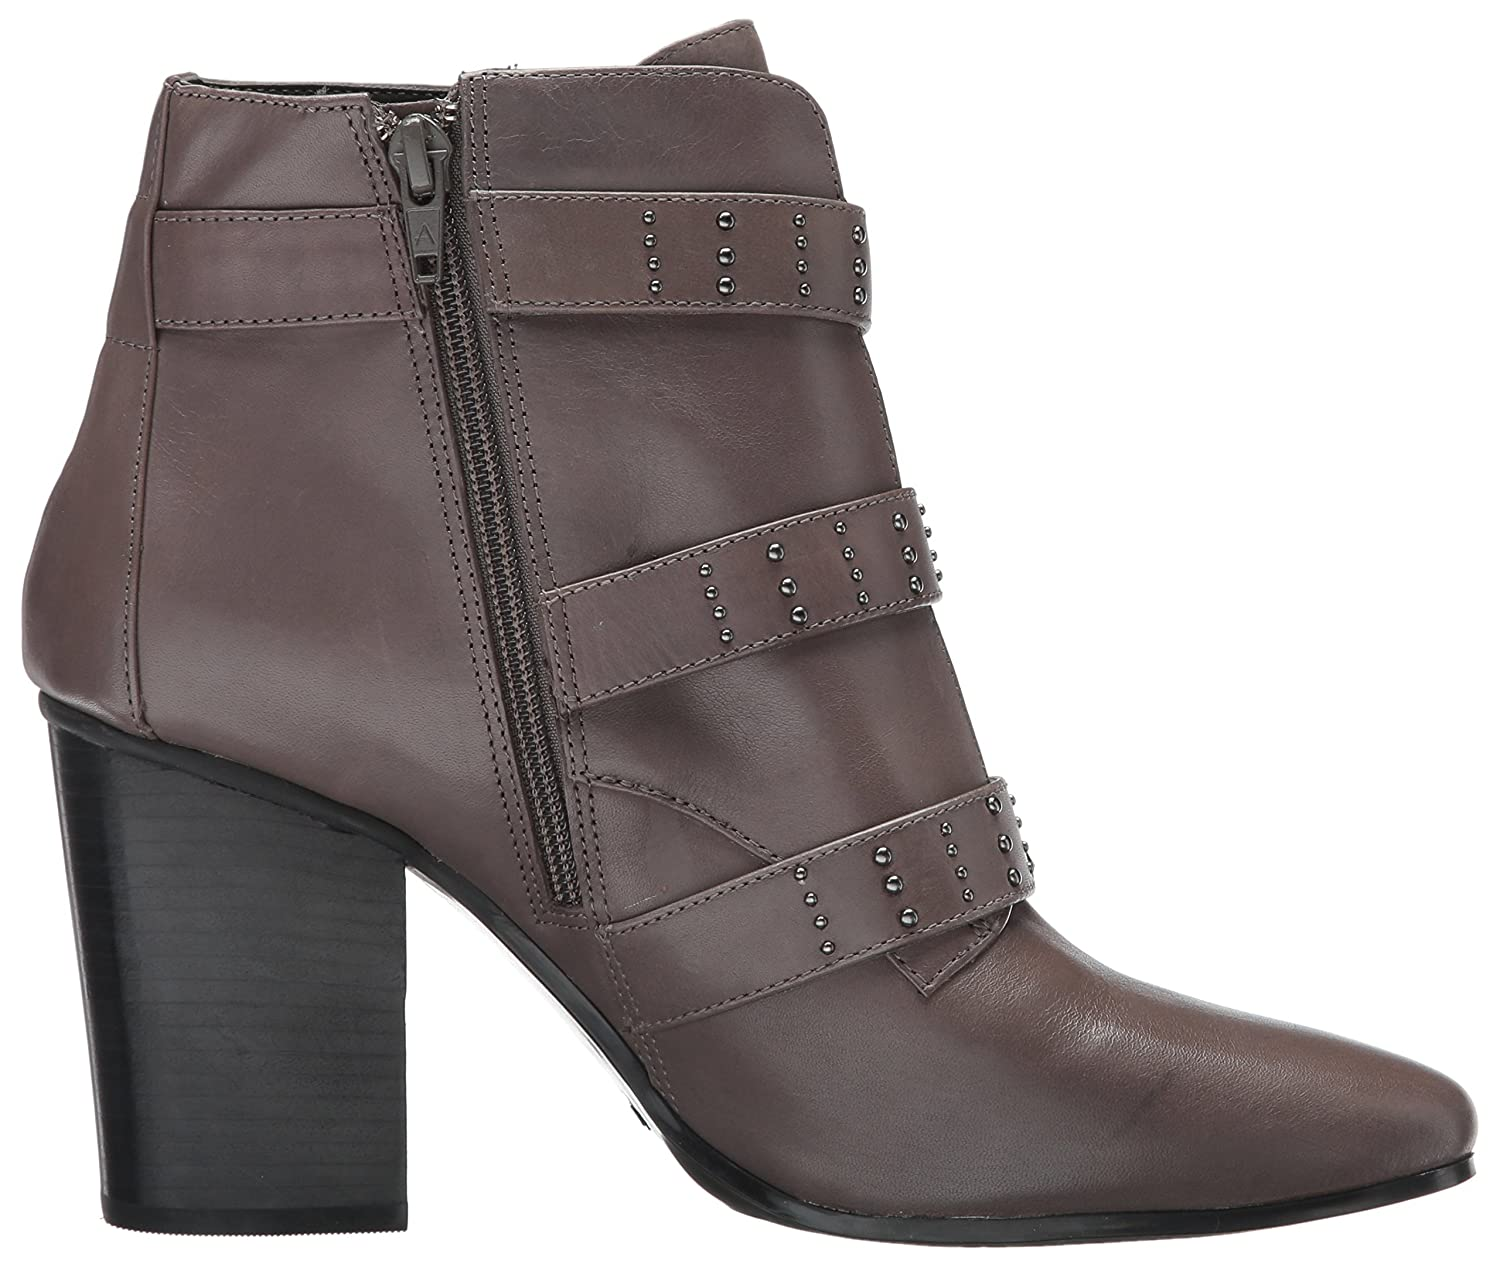 Aerosoles Women's Square Away Ankle Boot B06Y65NGT5 12 B(M) US|Grey Leather